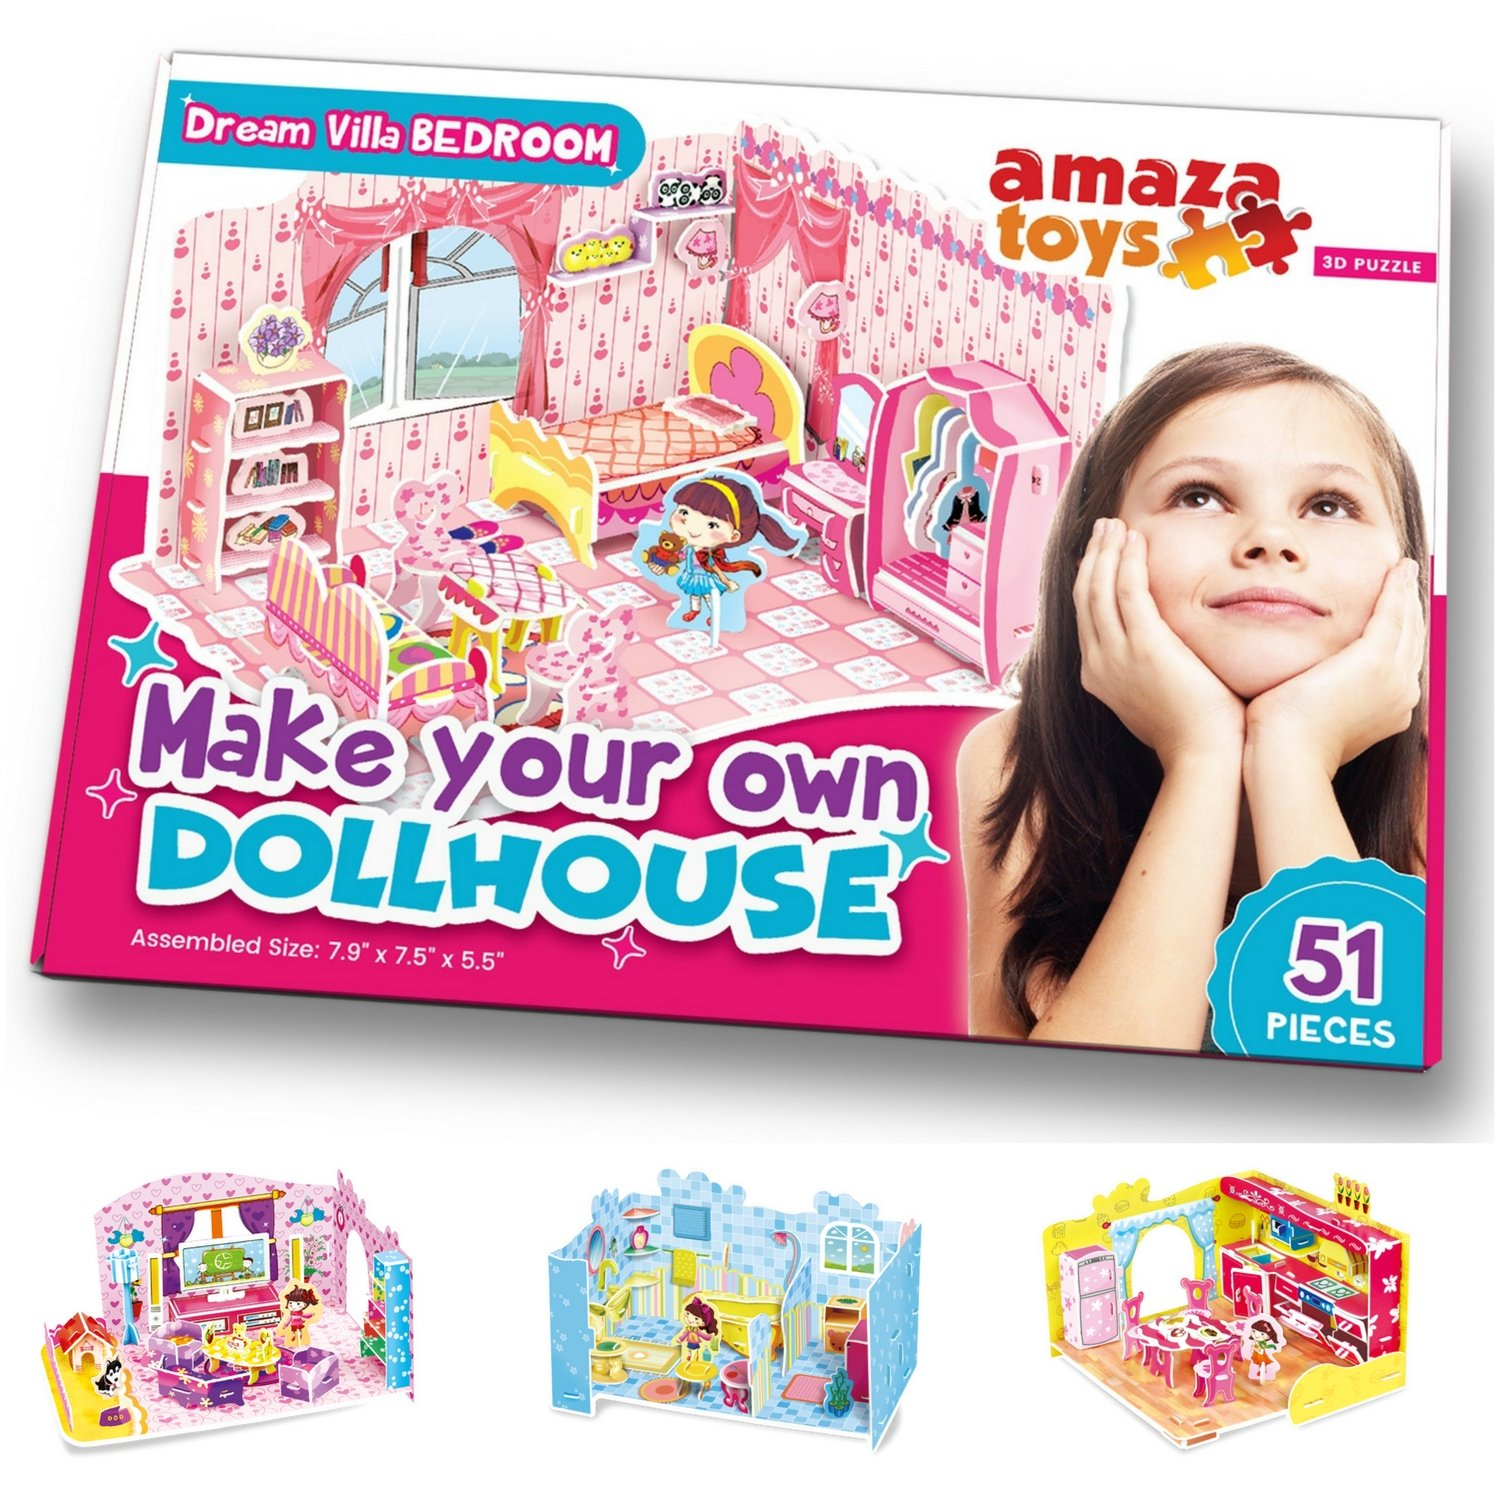 AmazaToys Make Your Own Dollhouse - 3D Puzzle Play Set - Ideal Gift for Girls 5-10 Educational Toys Craft for Kids - Bedroom (51 pieces)